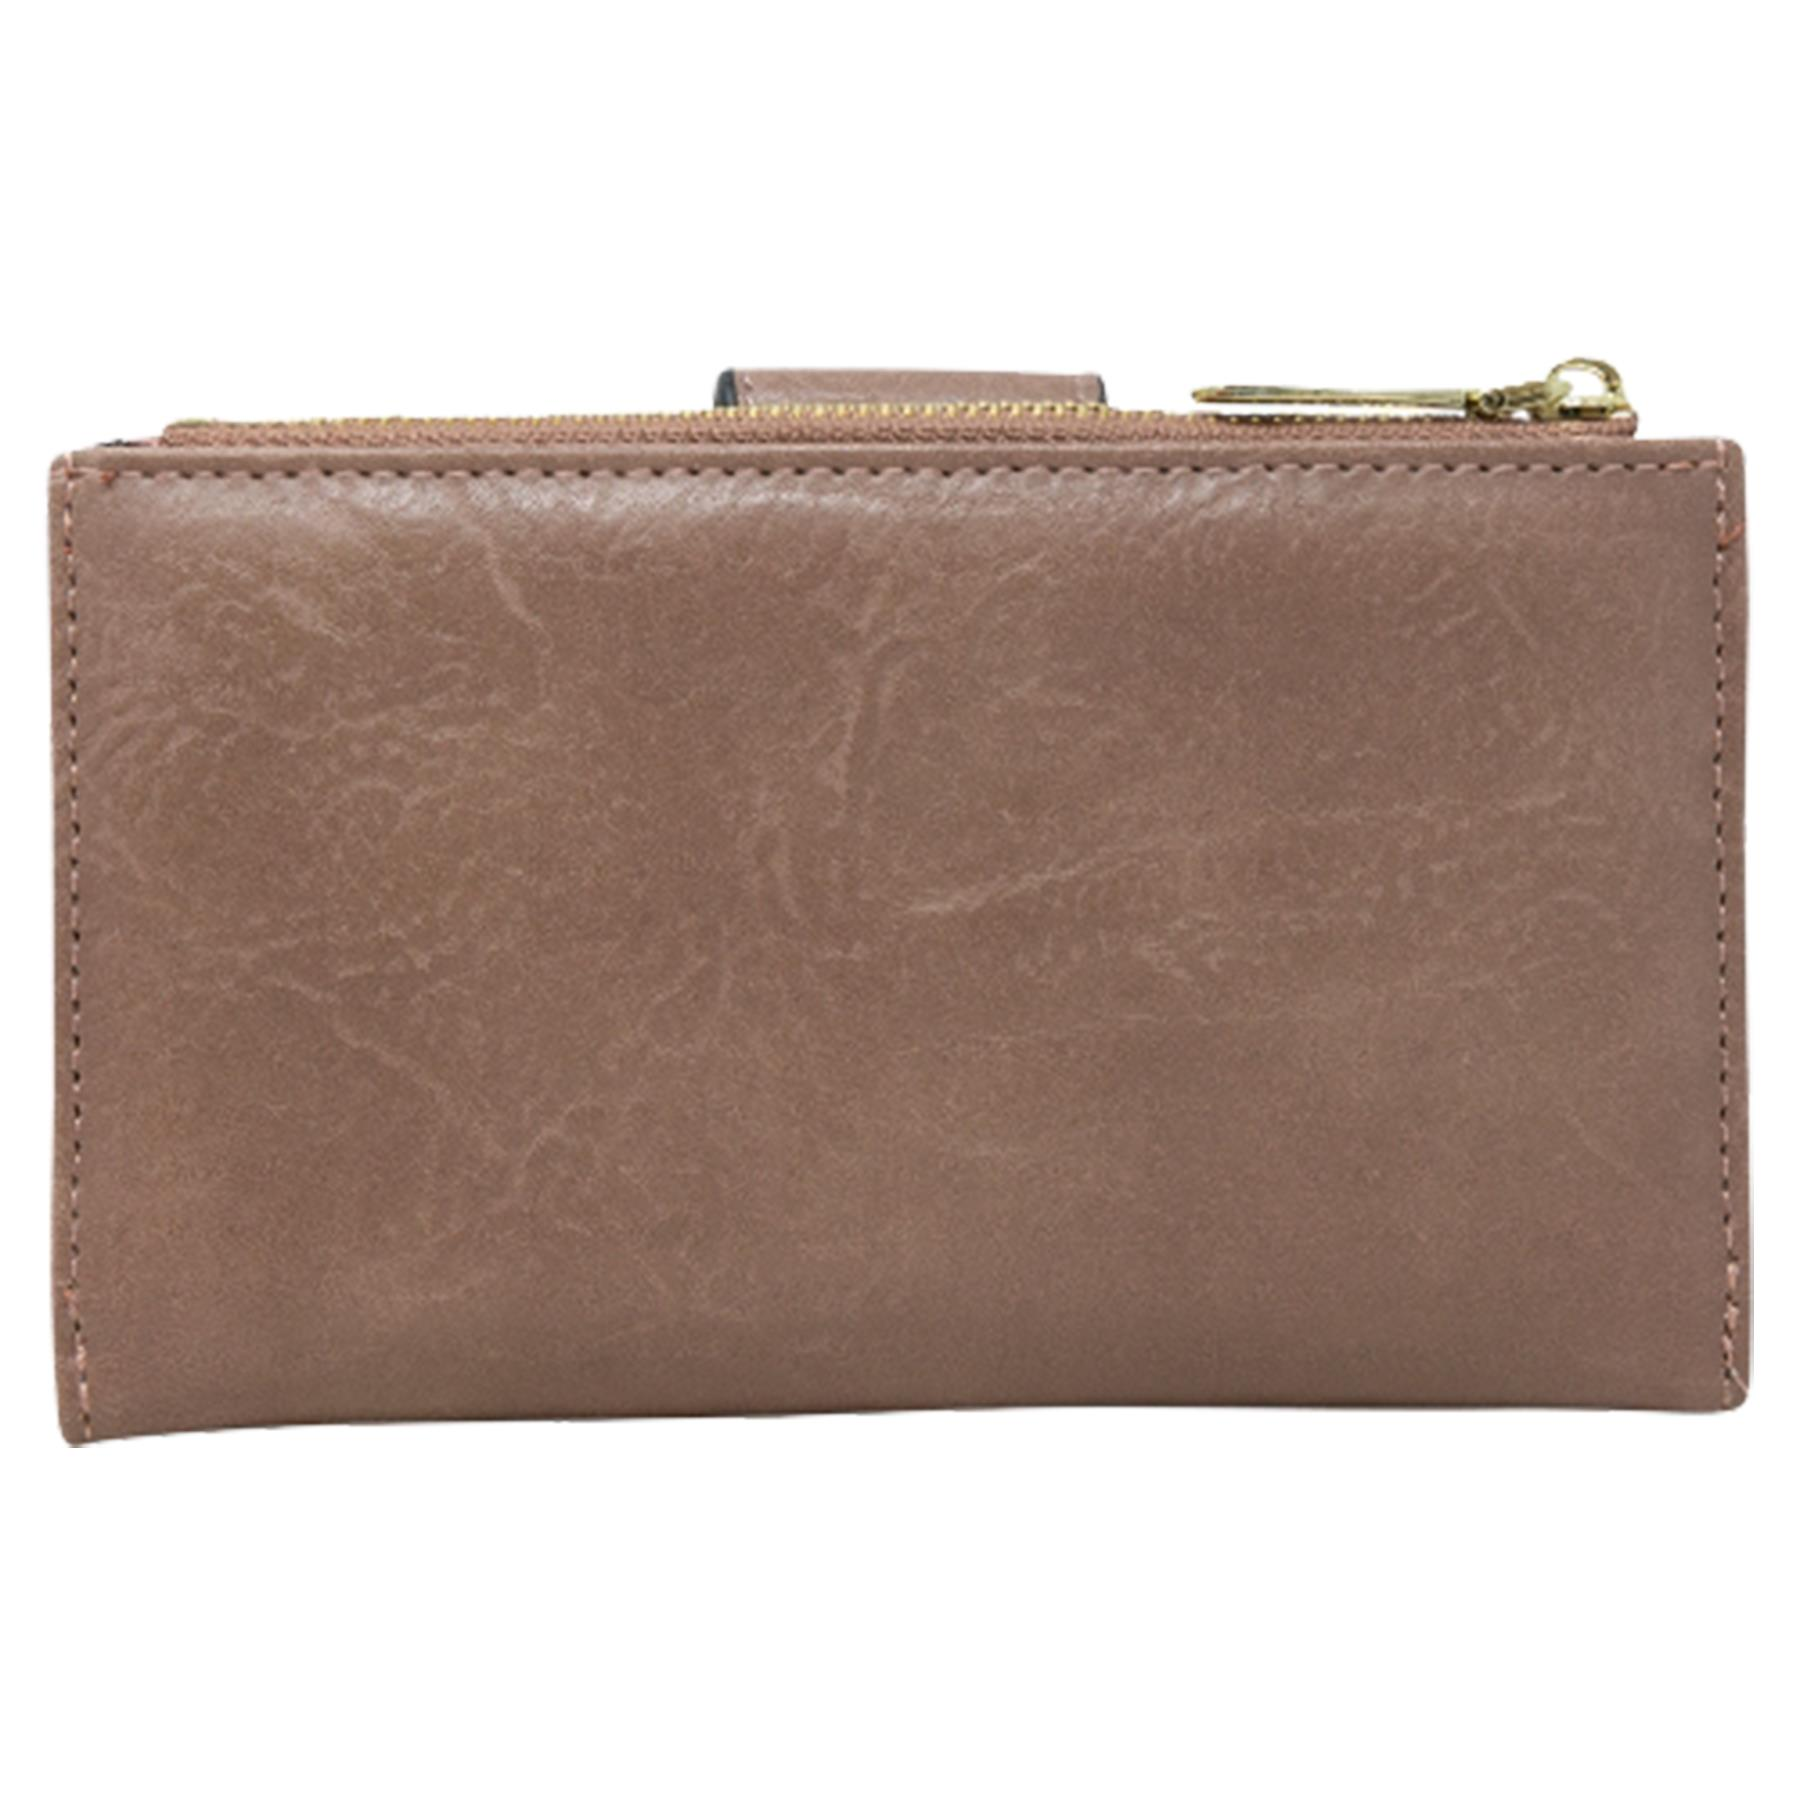 New-Soft-Plain-Synthetic-Leather-Card-Organiser-Ladies-Long-Purse thumbnail 20